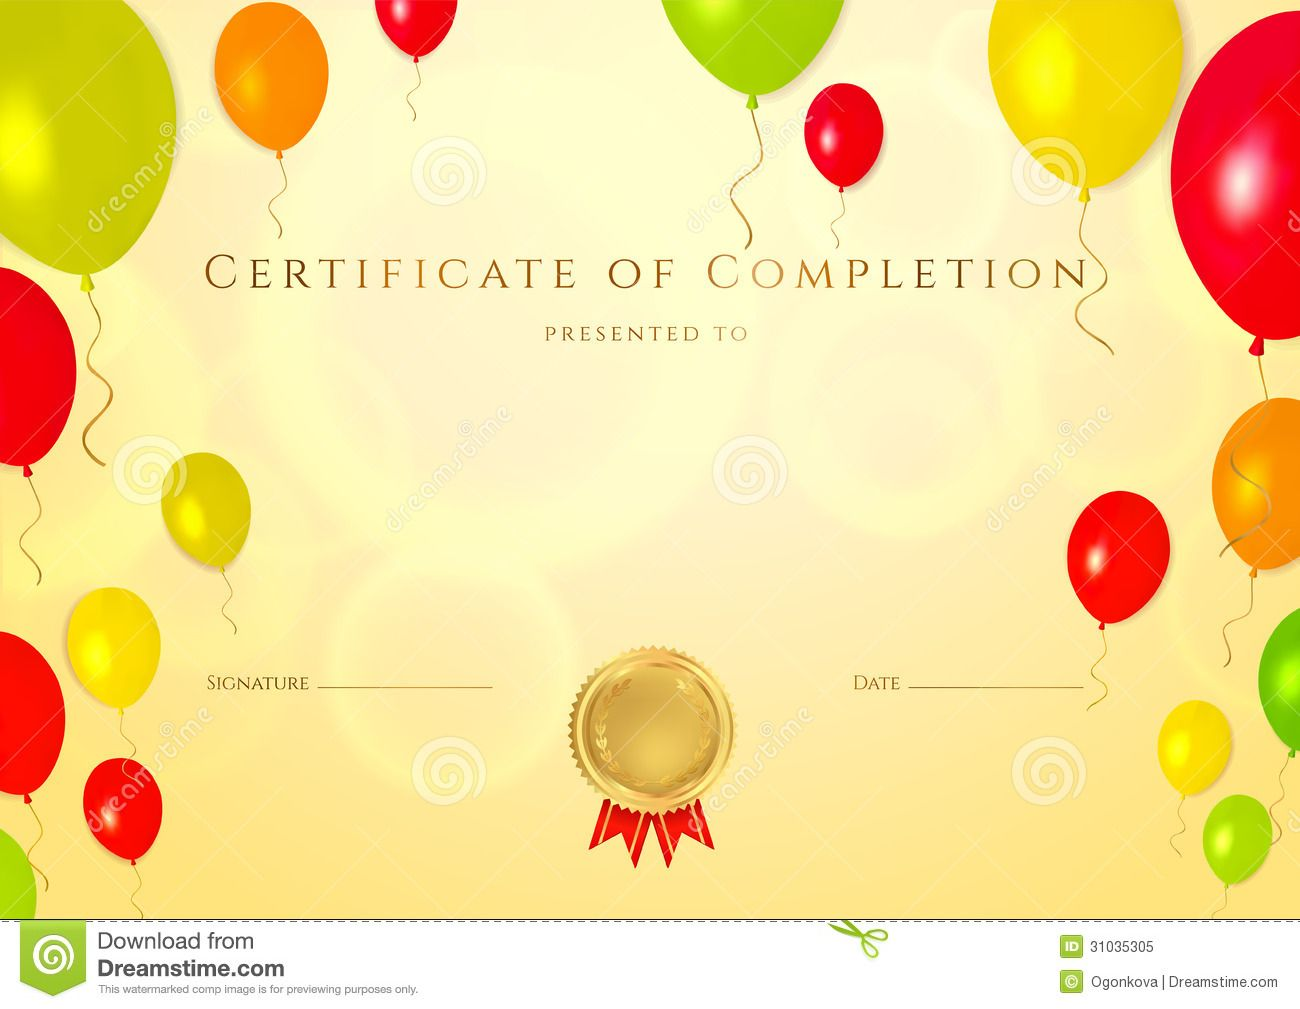 Certificate Template For Kids certificate template for kids free – Certificate Template for Kids